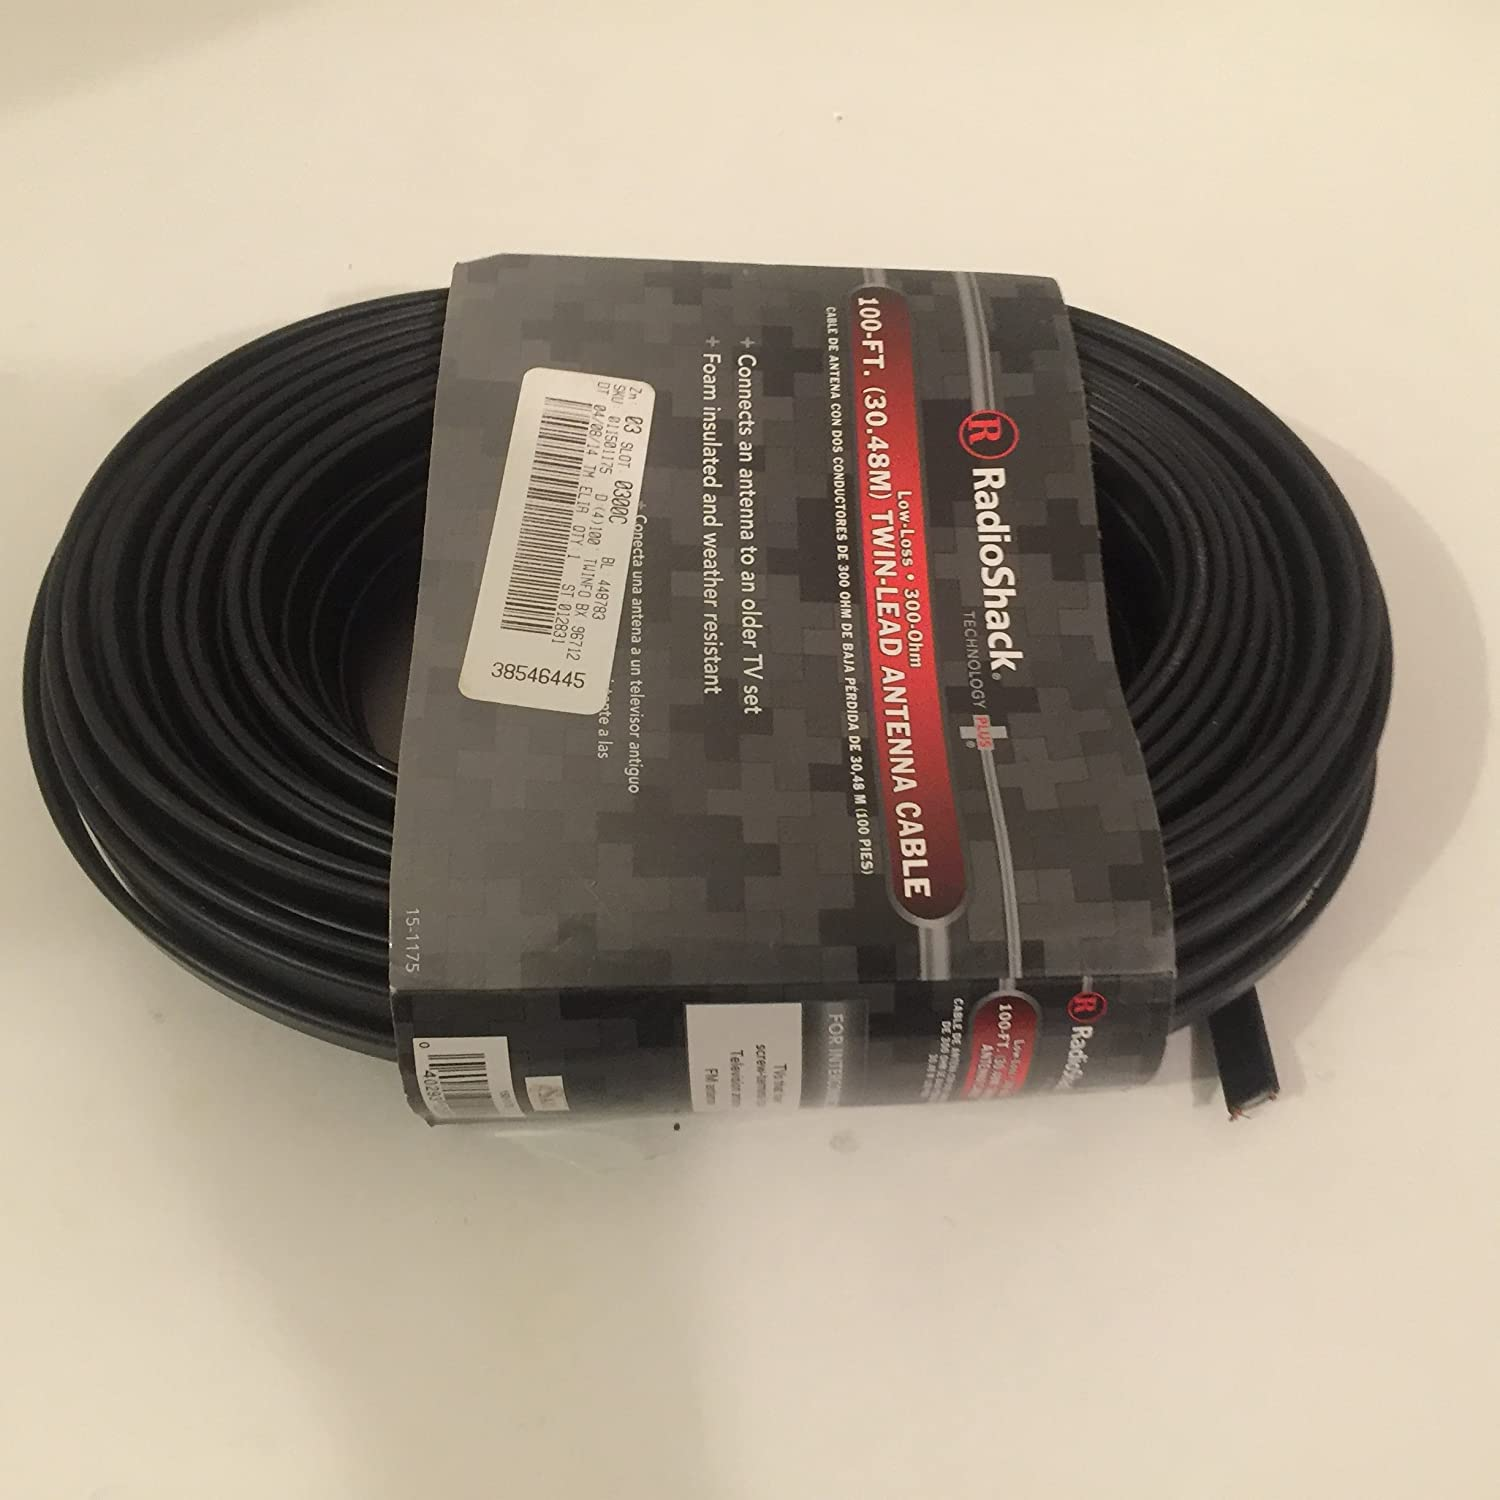 Amazon.com: Radio Shack 100-Ft. 300-Ohm Flat Twin-Lead Cable: Computers & Accessories